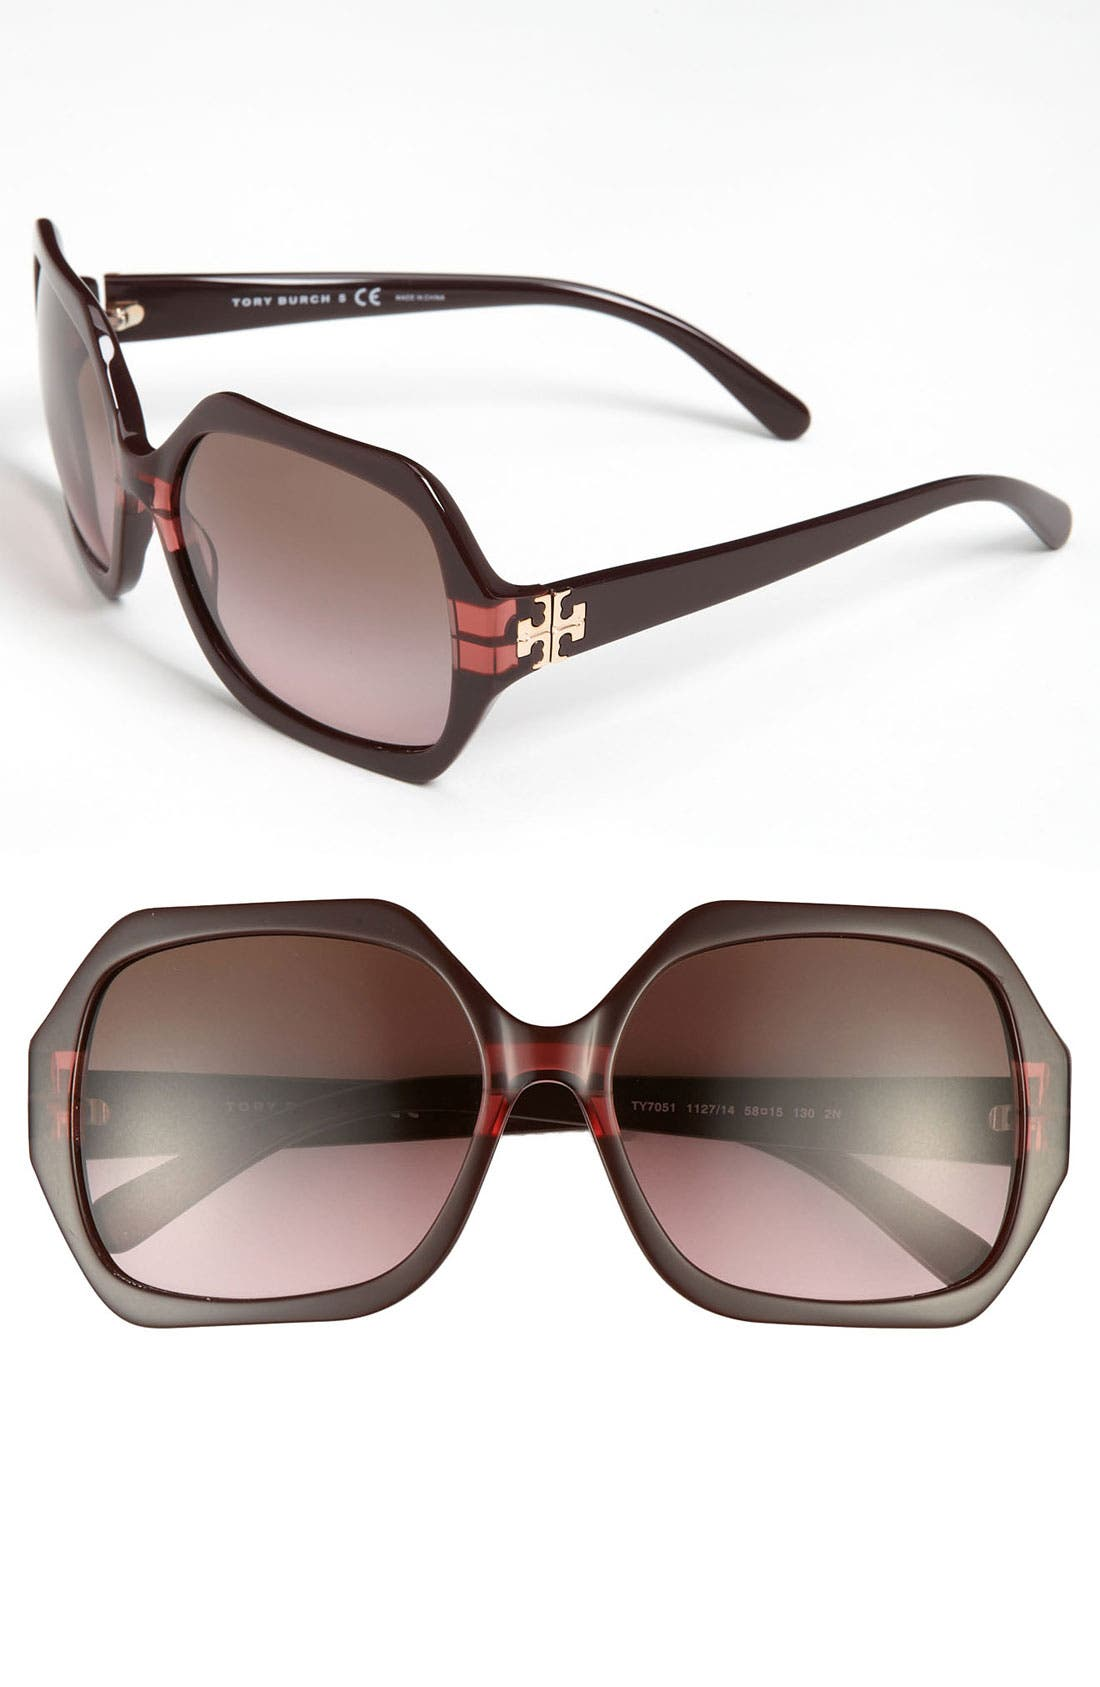 Main Image - Tory Burch 58mm Sunglasses